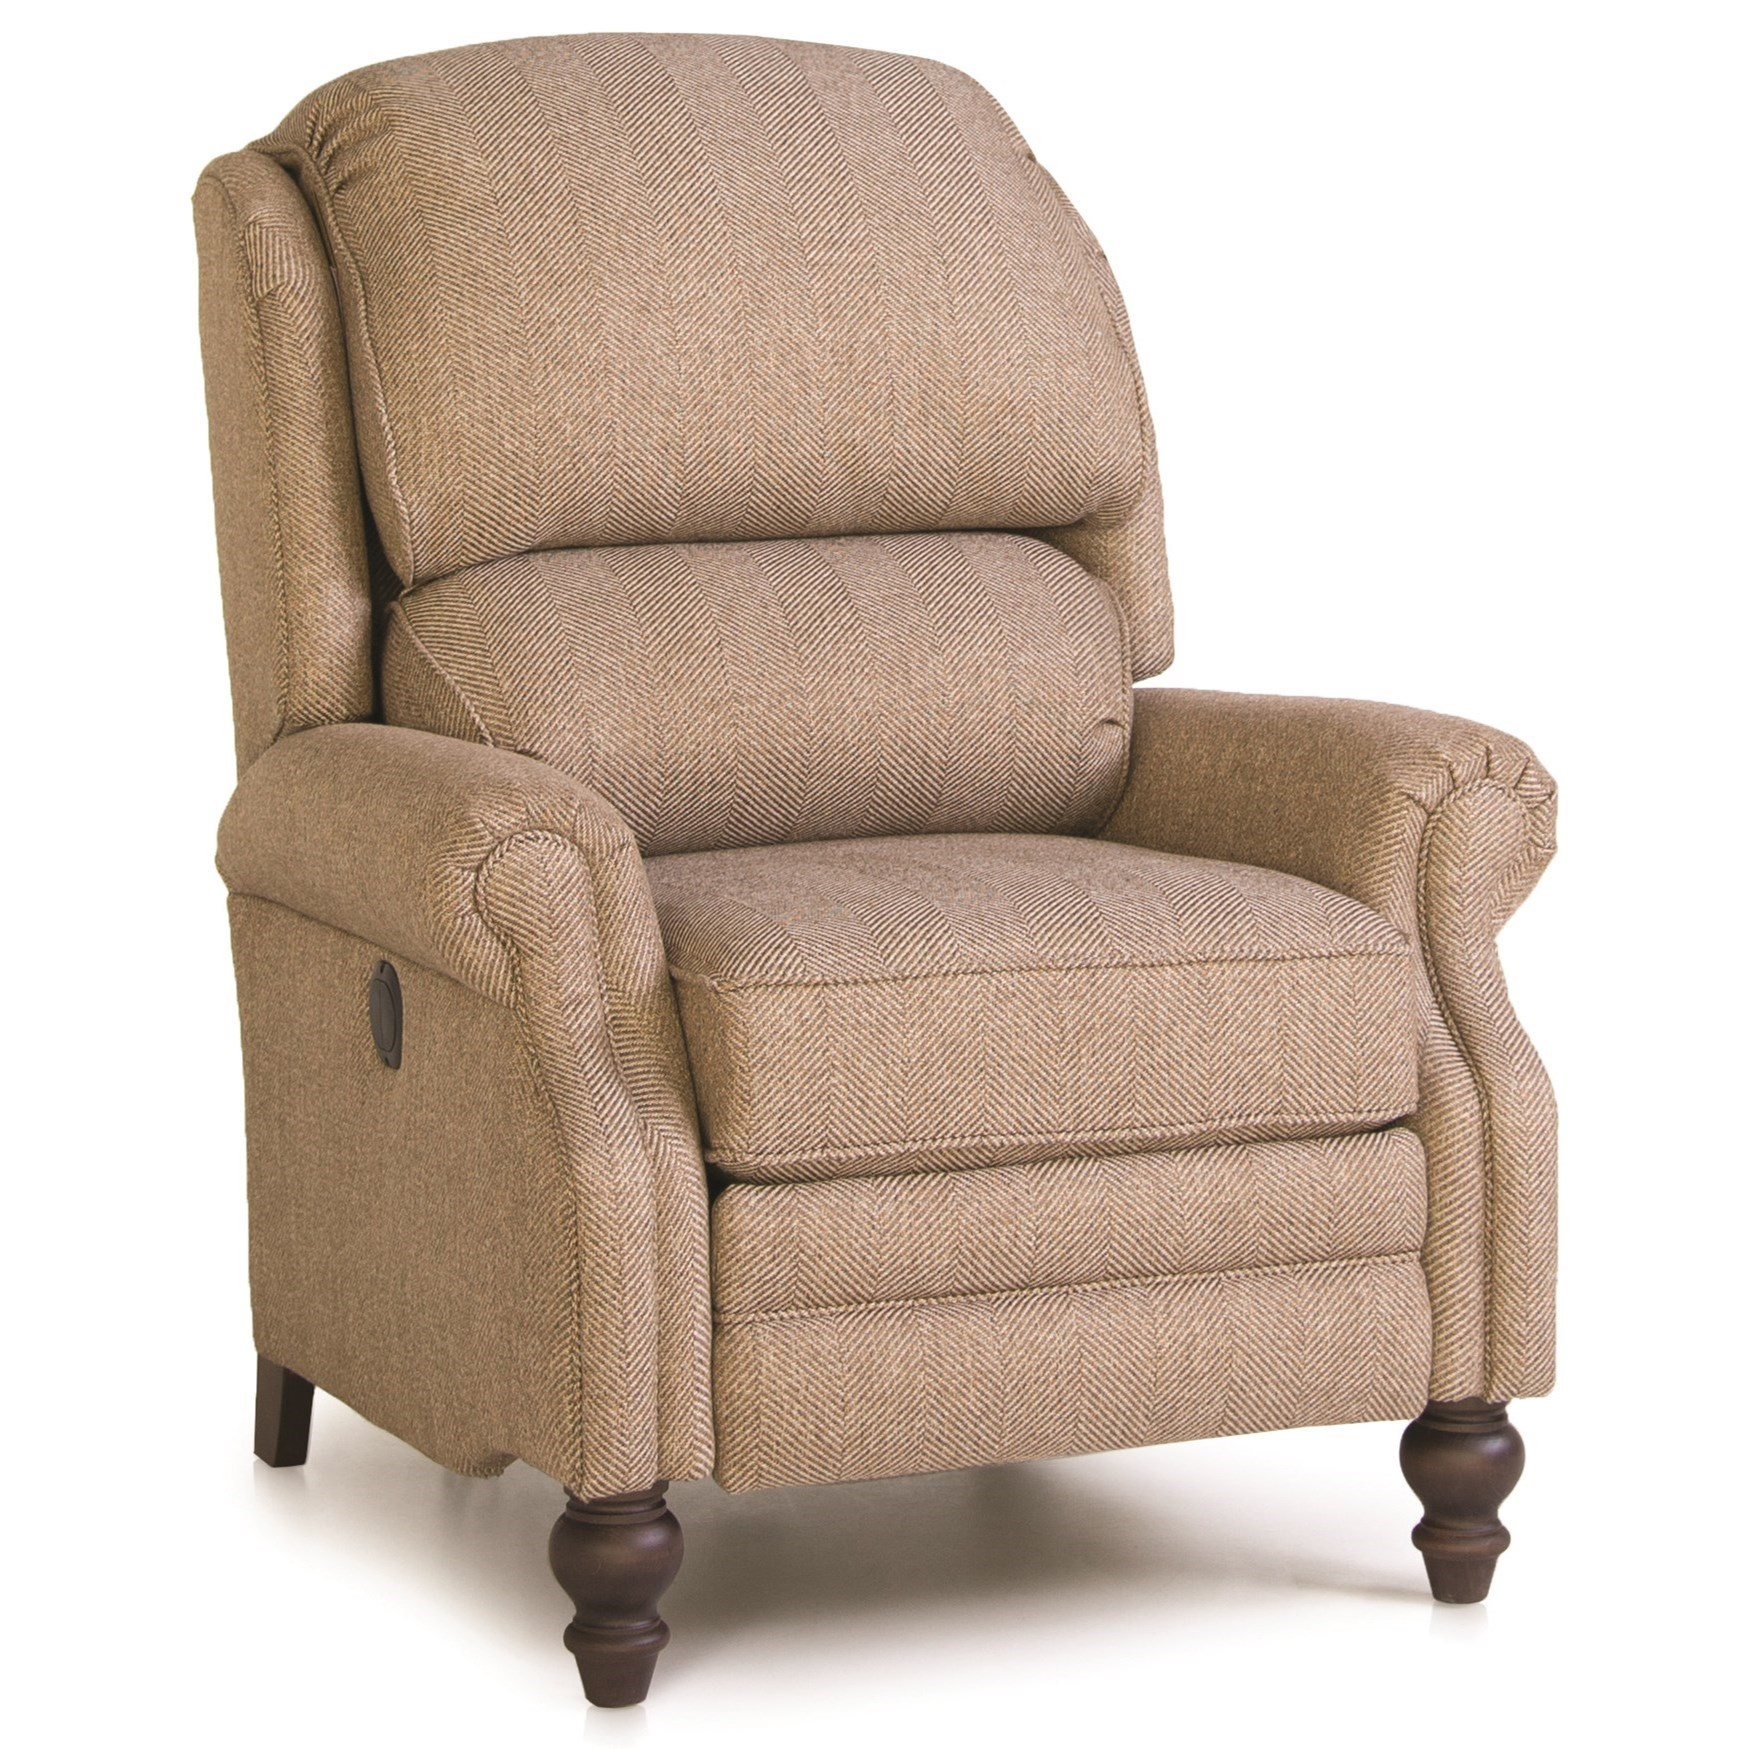 705 Pressback Reclining Chair by Smith Brothers at Mueller Furniture